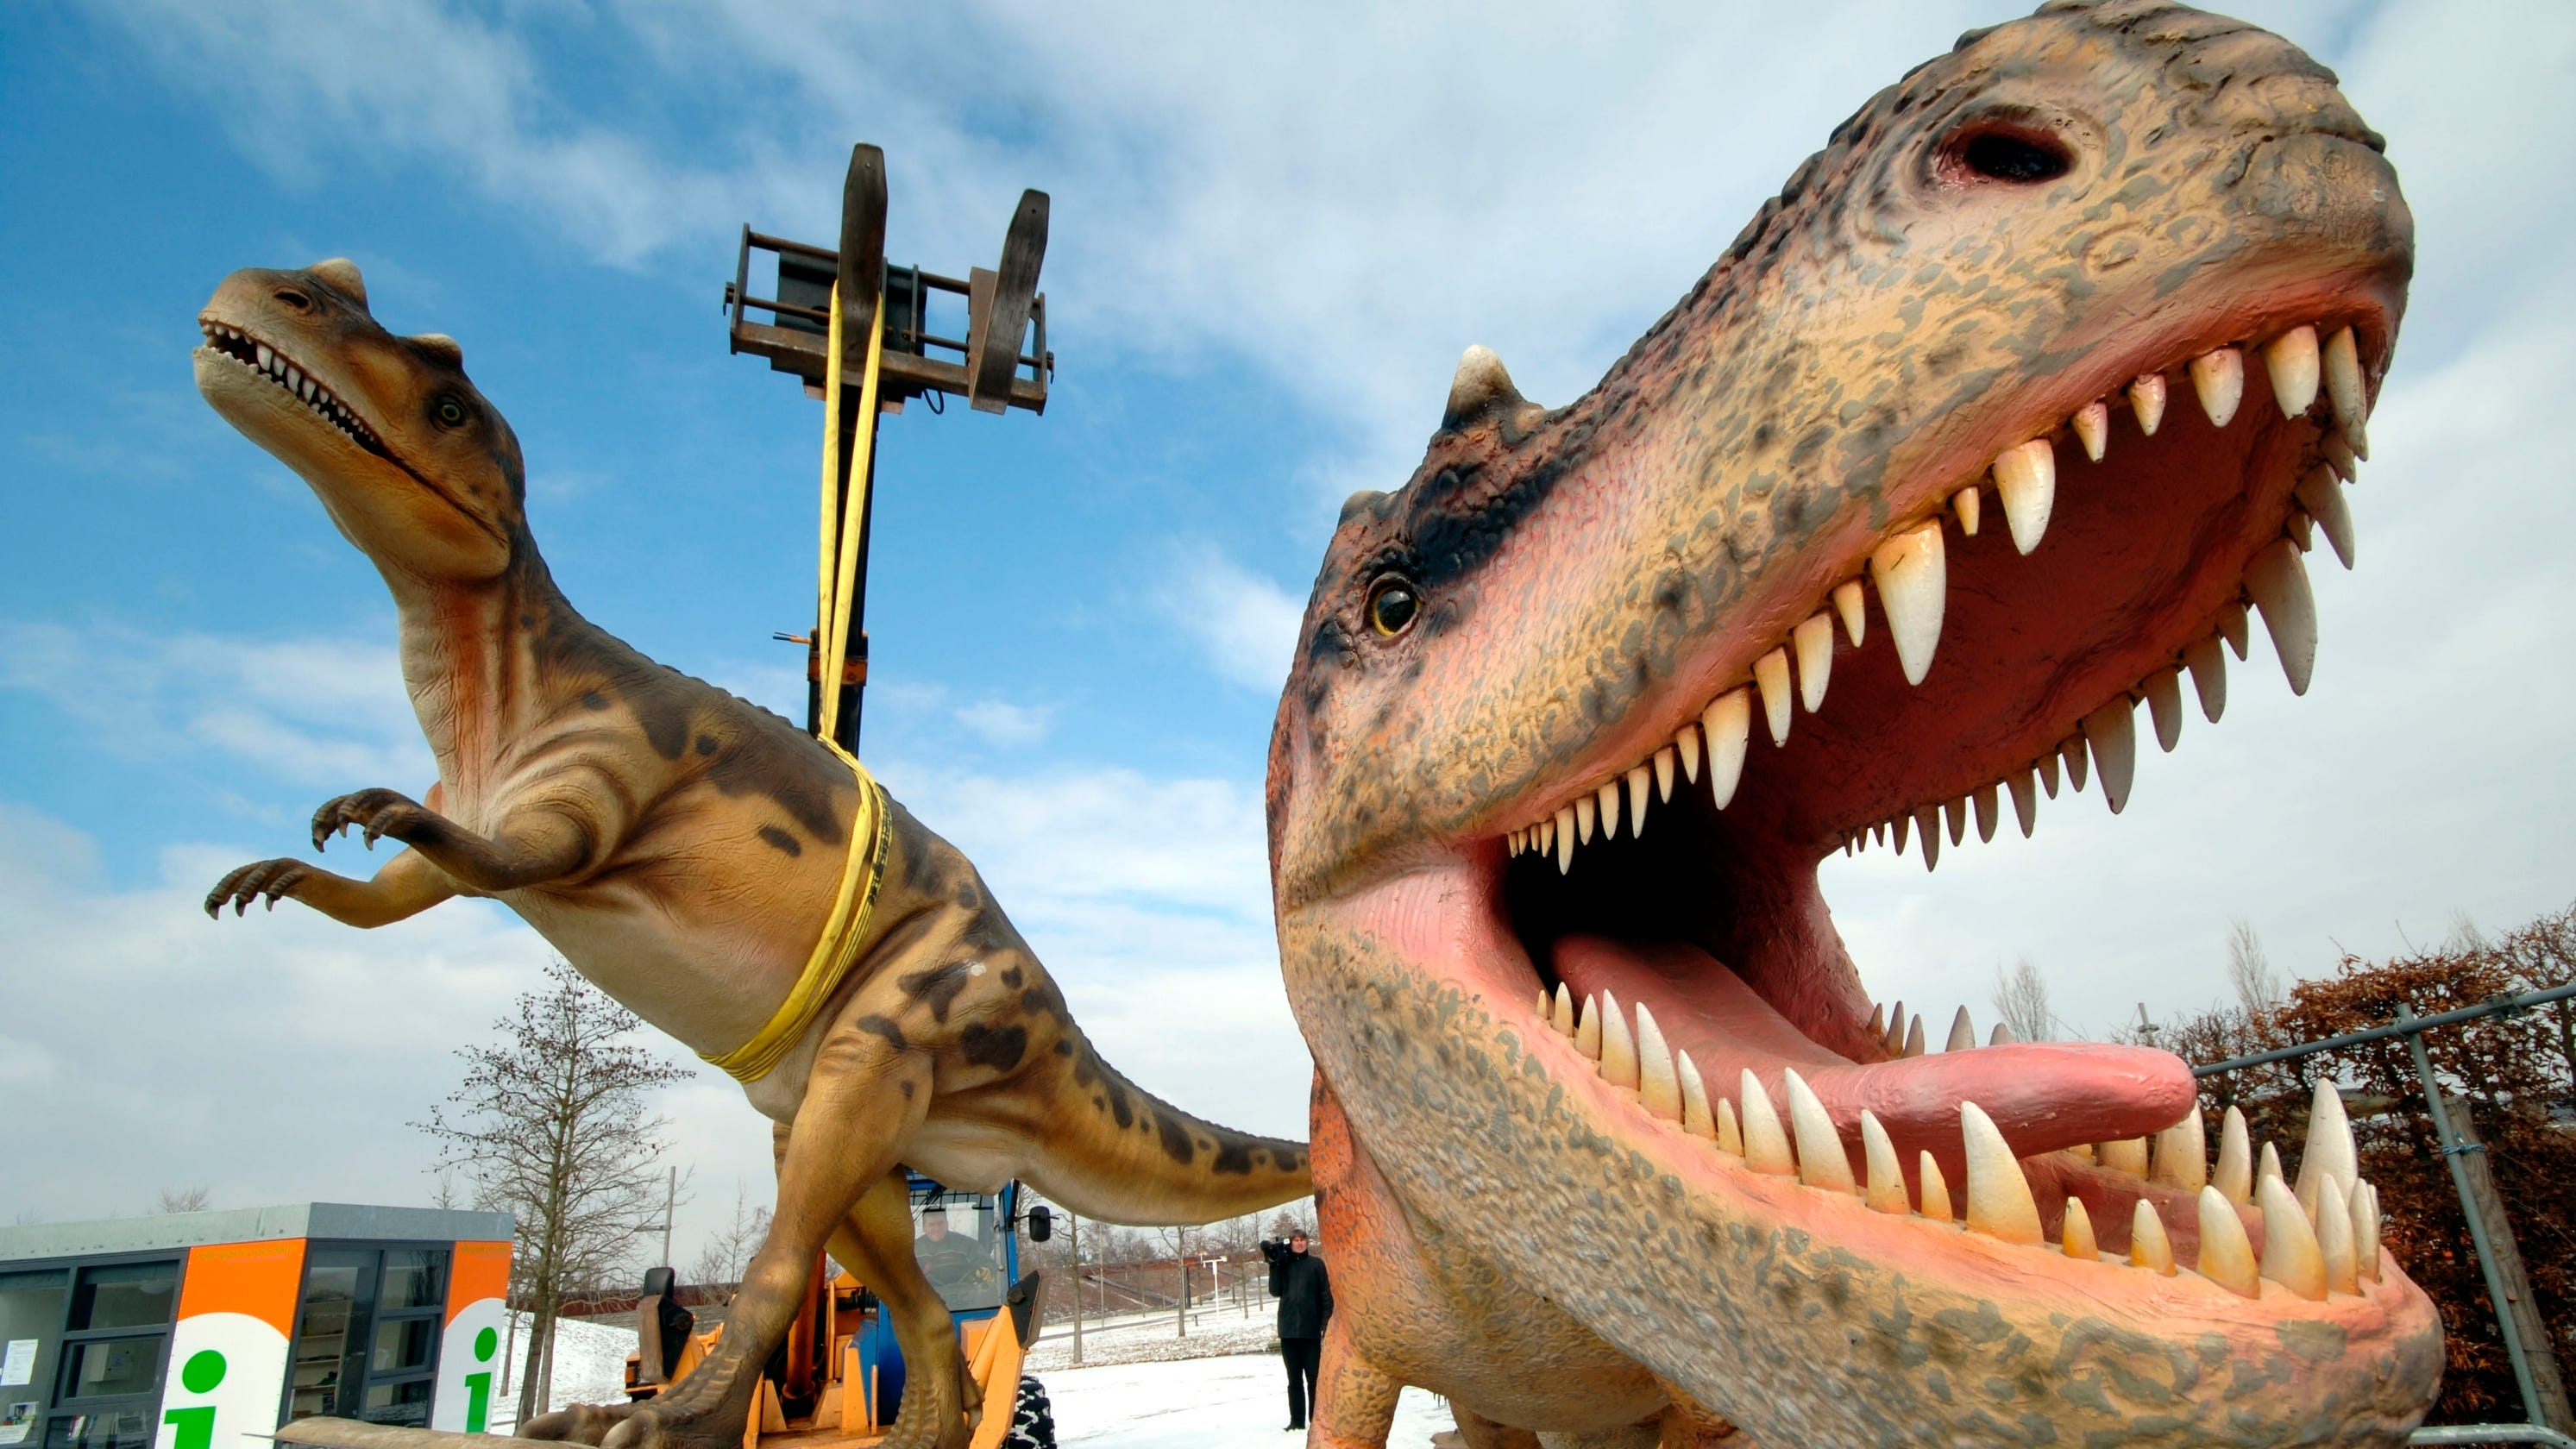 Caring for kids during COVID and beyond: Always know your favorite dinosaur and princess